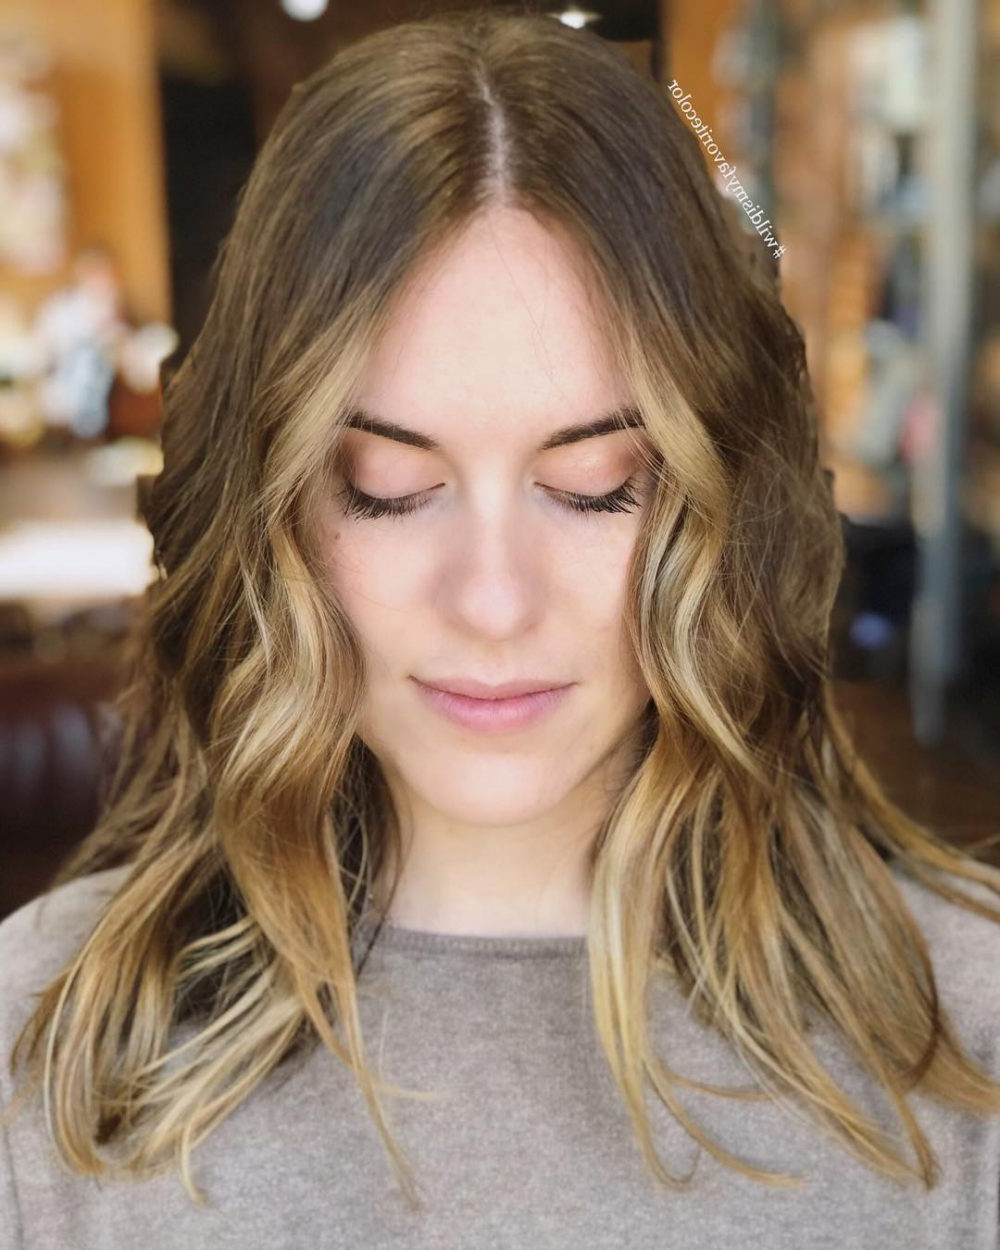 Famous Womens Medium Haircuts For Round Faces Throughout 17 Flattering Medium Hairstyles For Round Faces In 2019 (Gallery 2 of 20)